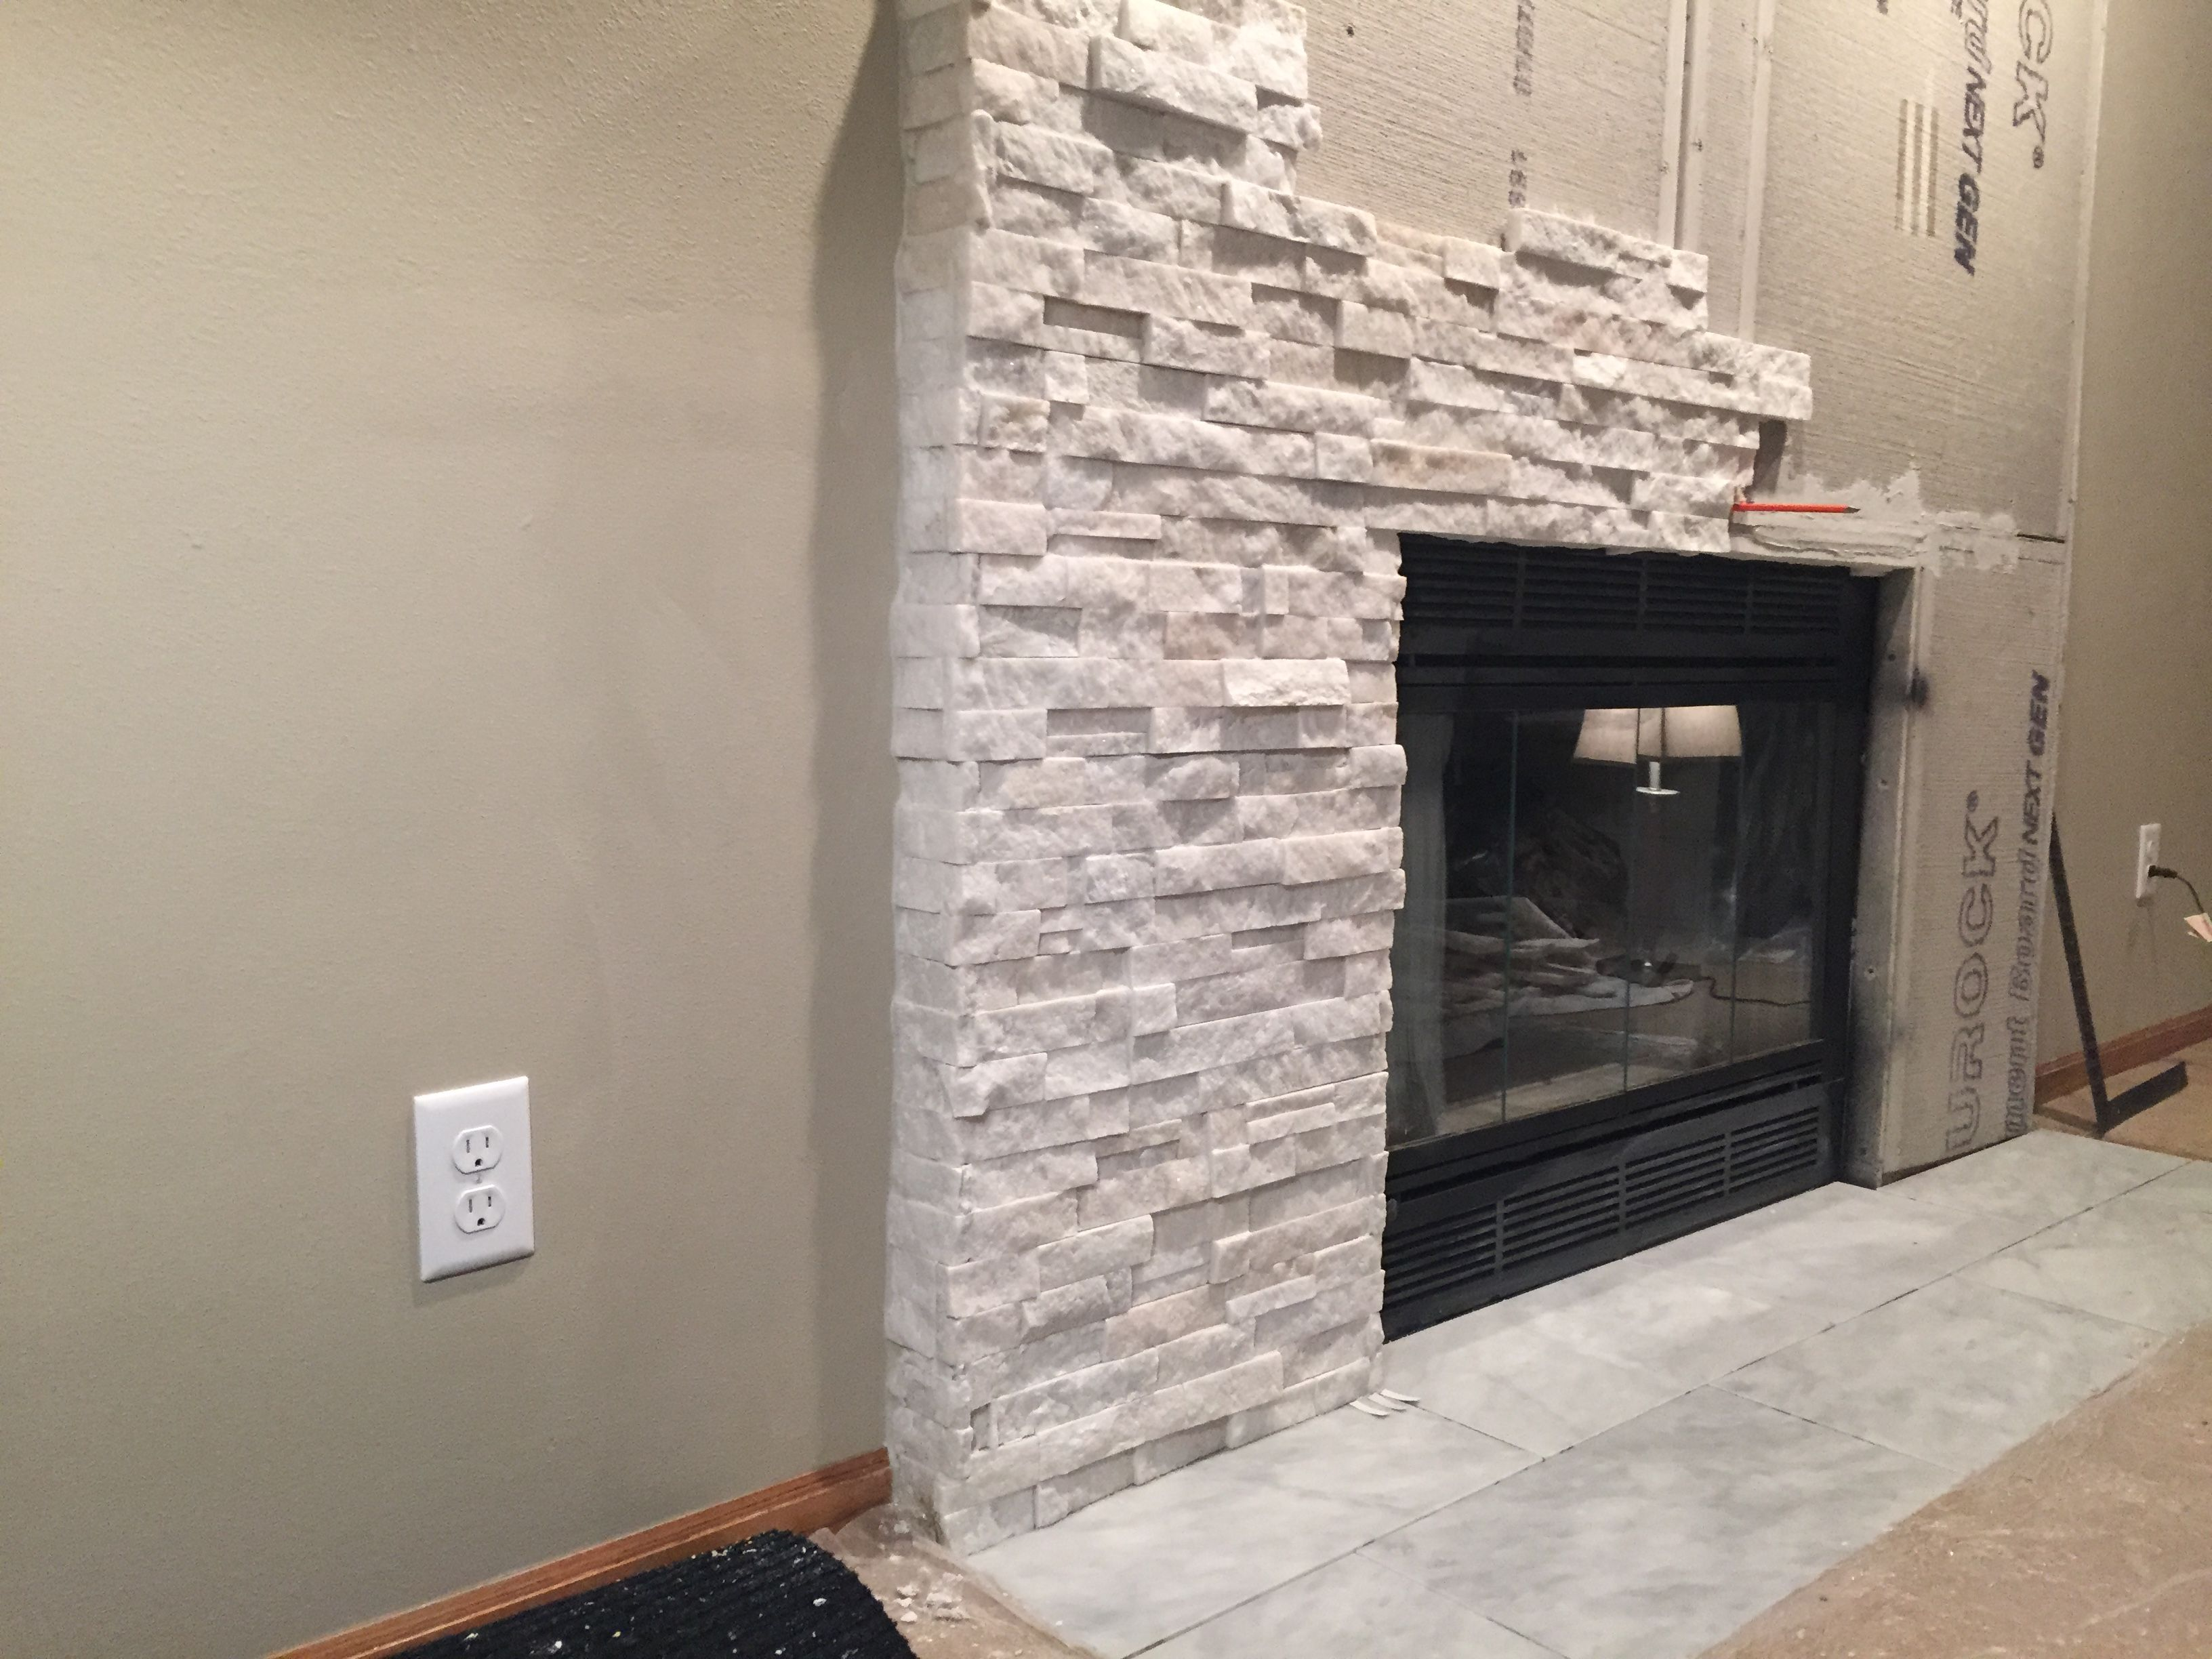 adding stone veneers mosaic to fireplace diy - Google Search ...